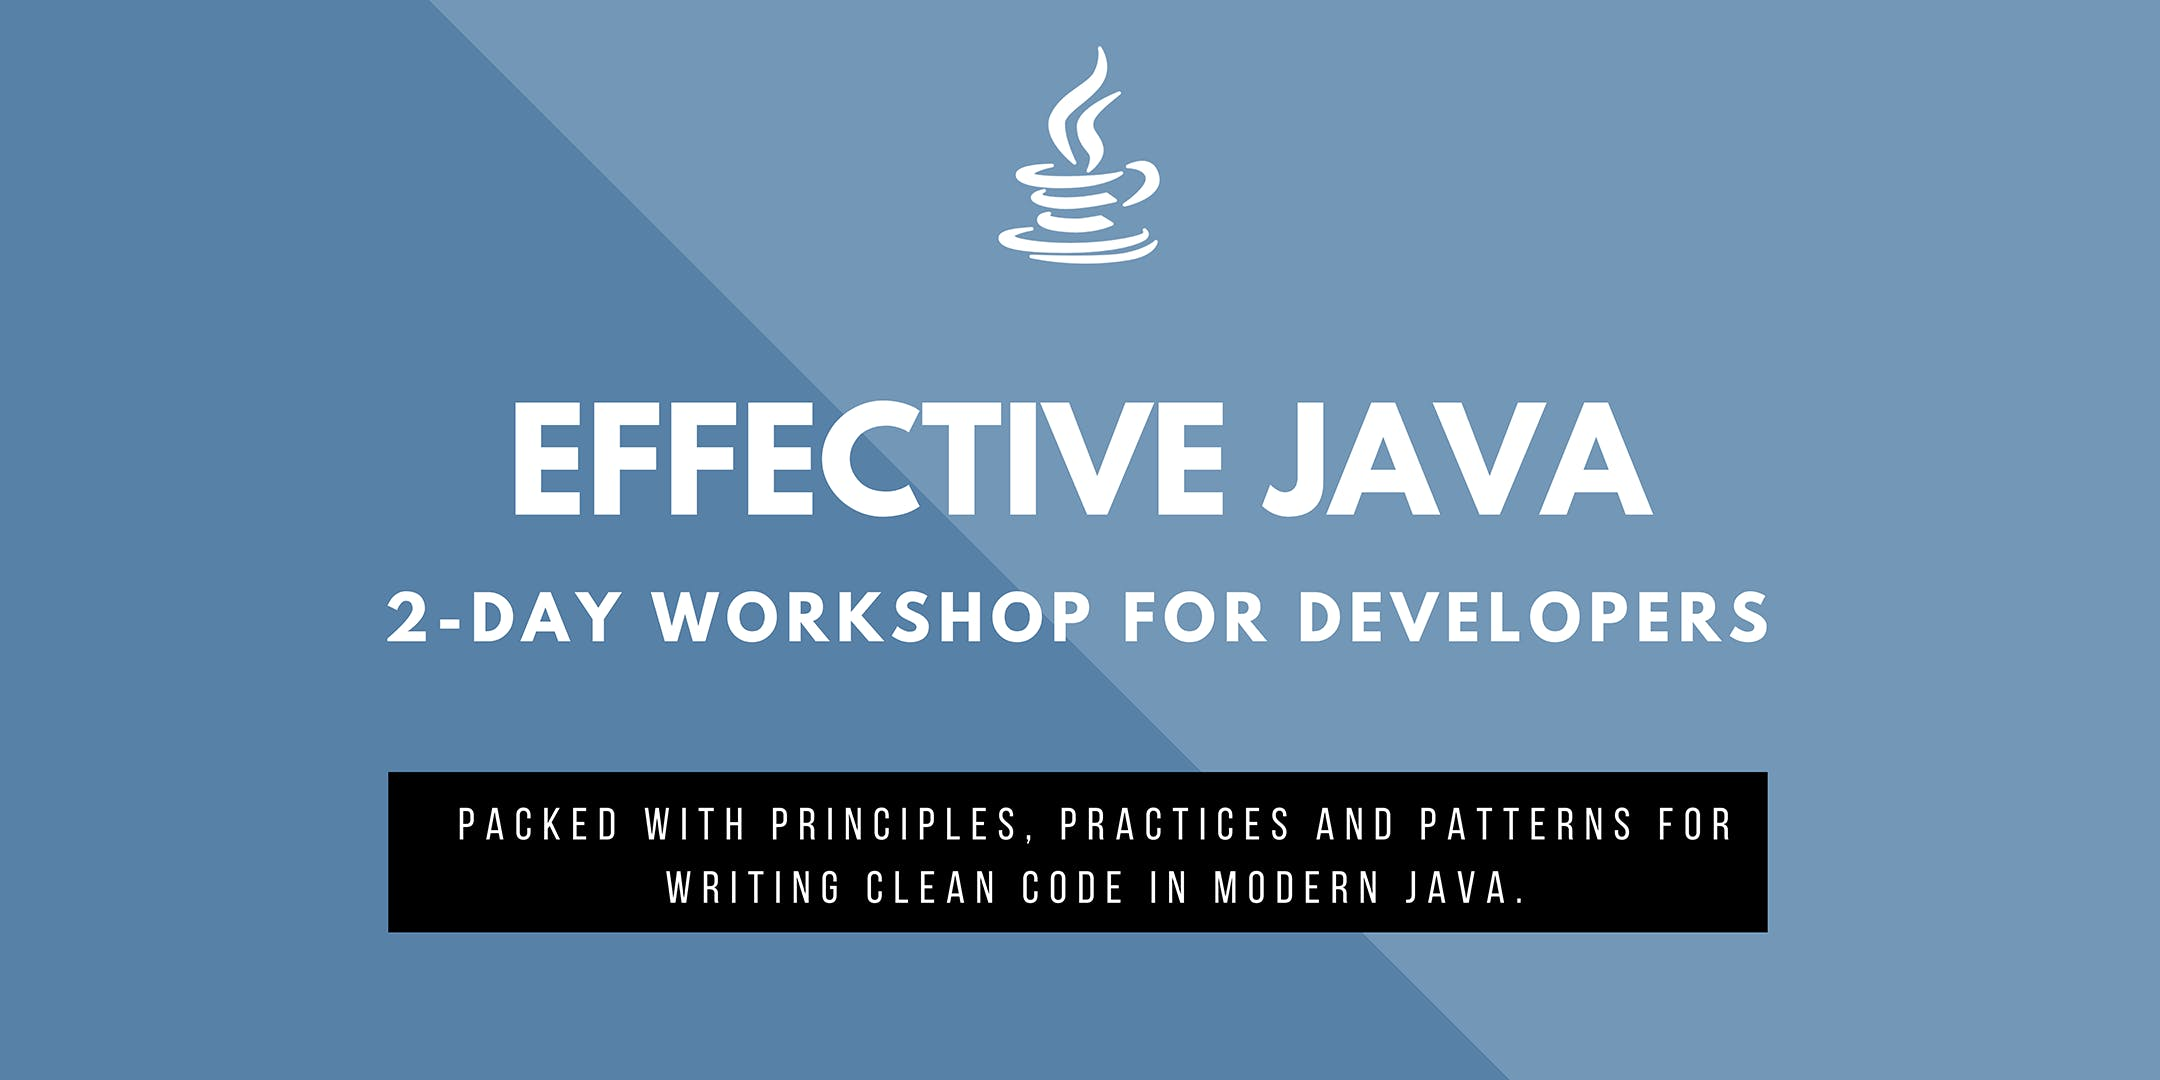 TOP Effective Java 10 for Developers (Dsseldorf)